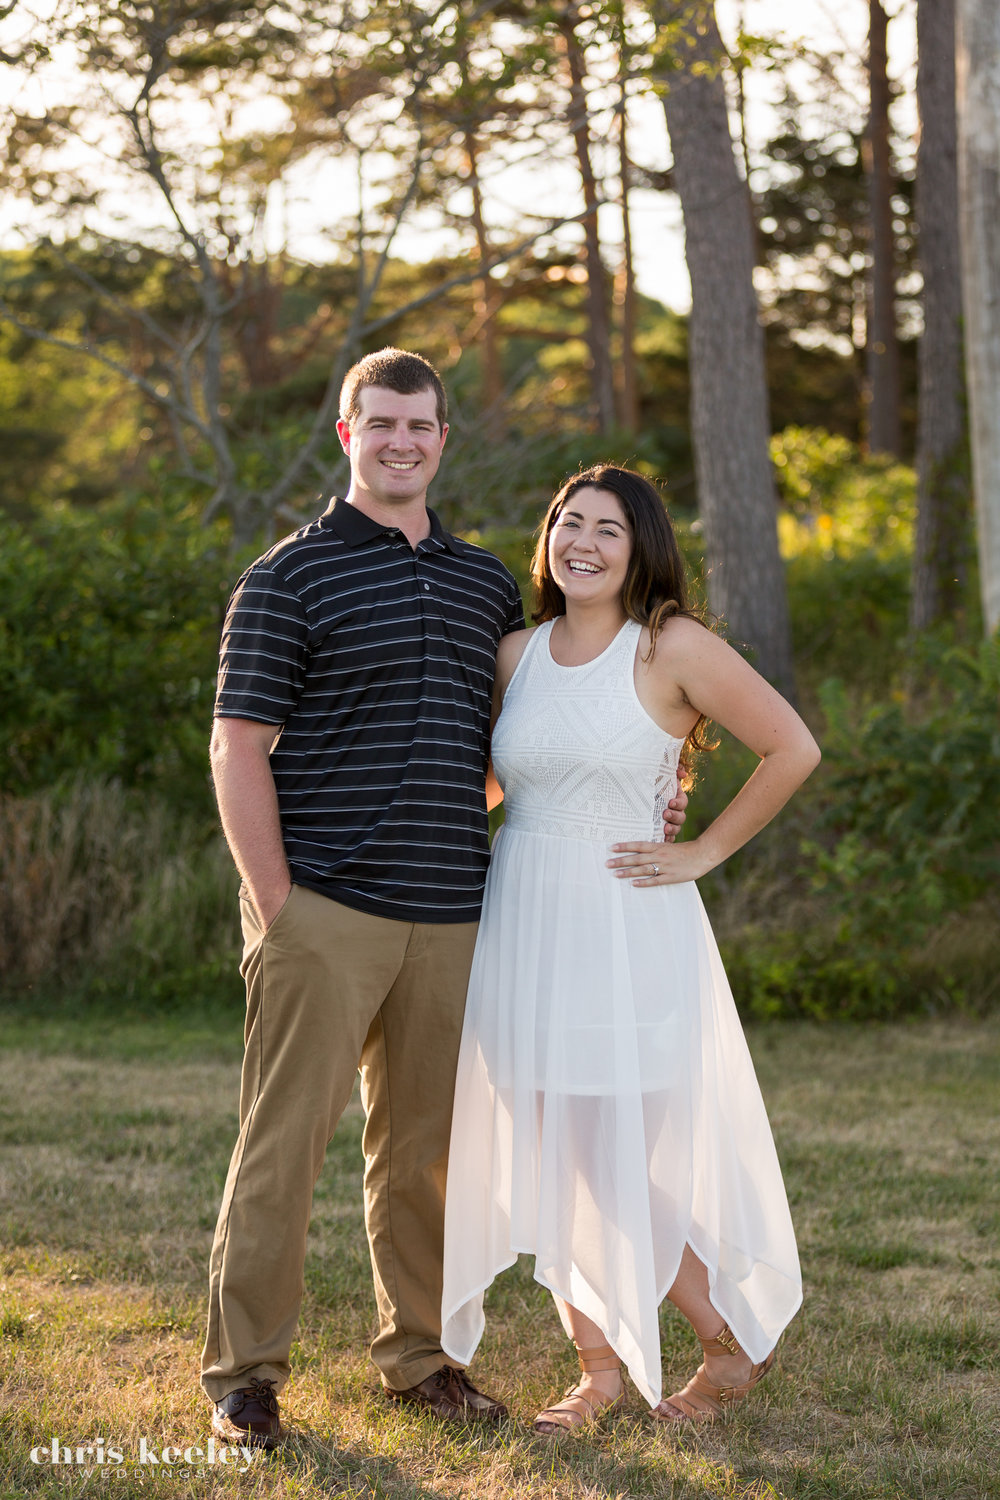 10-engagement-wedding-pictures-rye-new-hampshire-chris-keeley-weddings.jpg